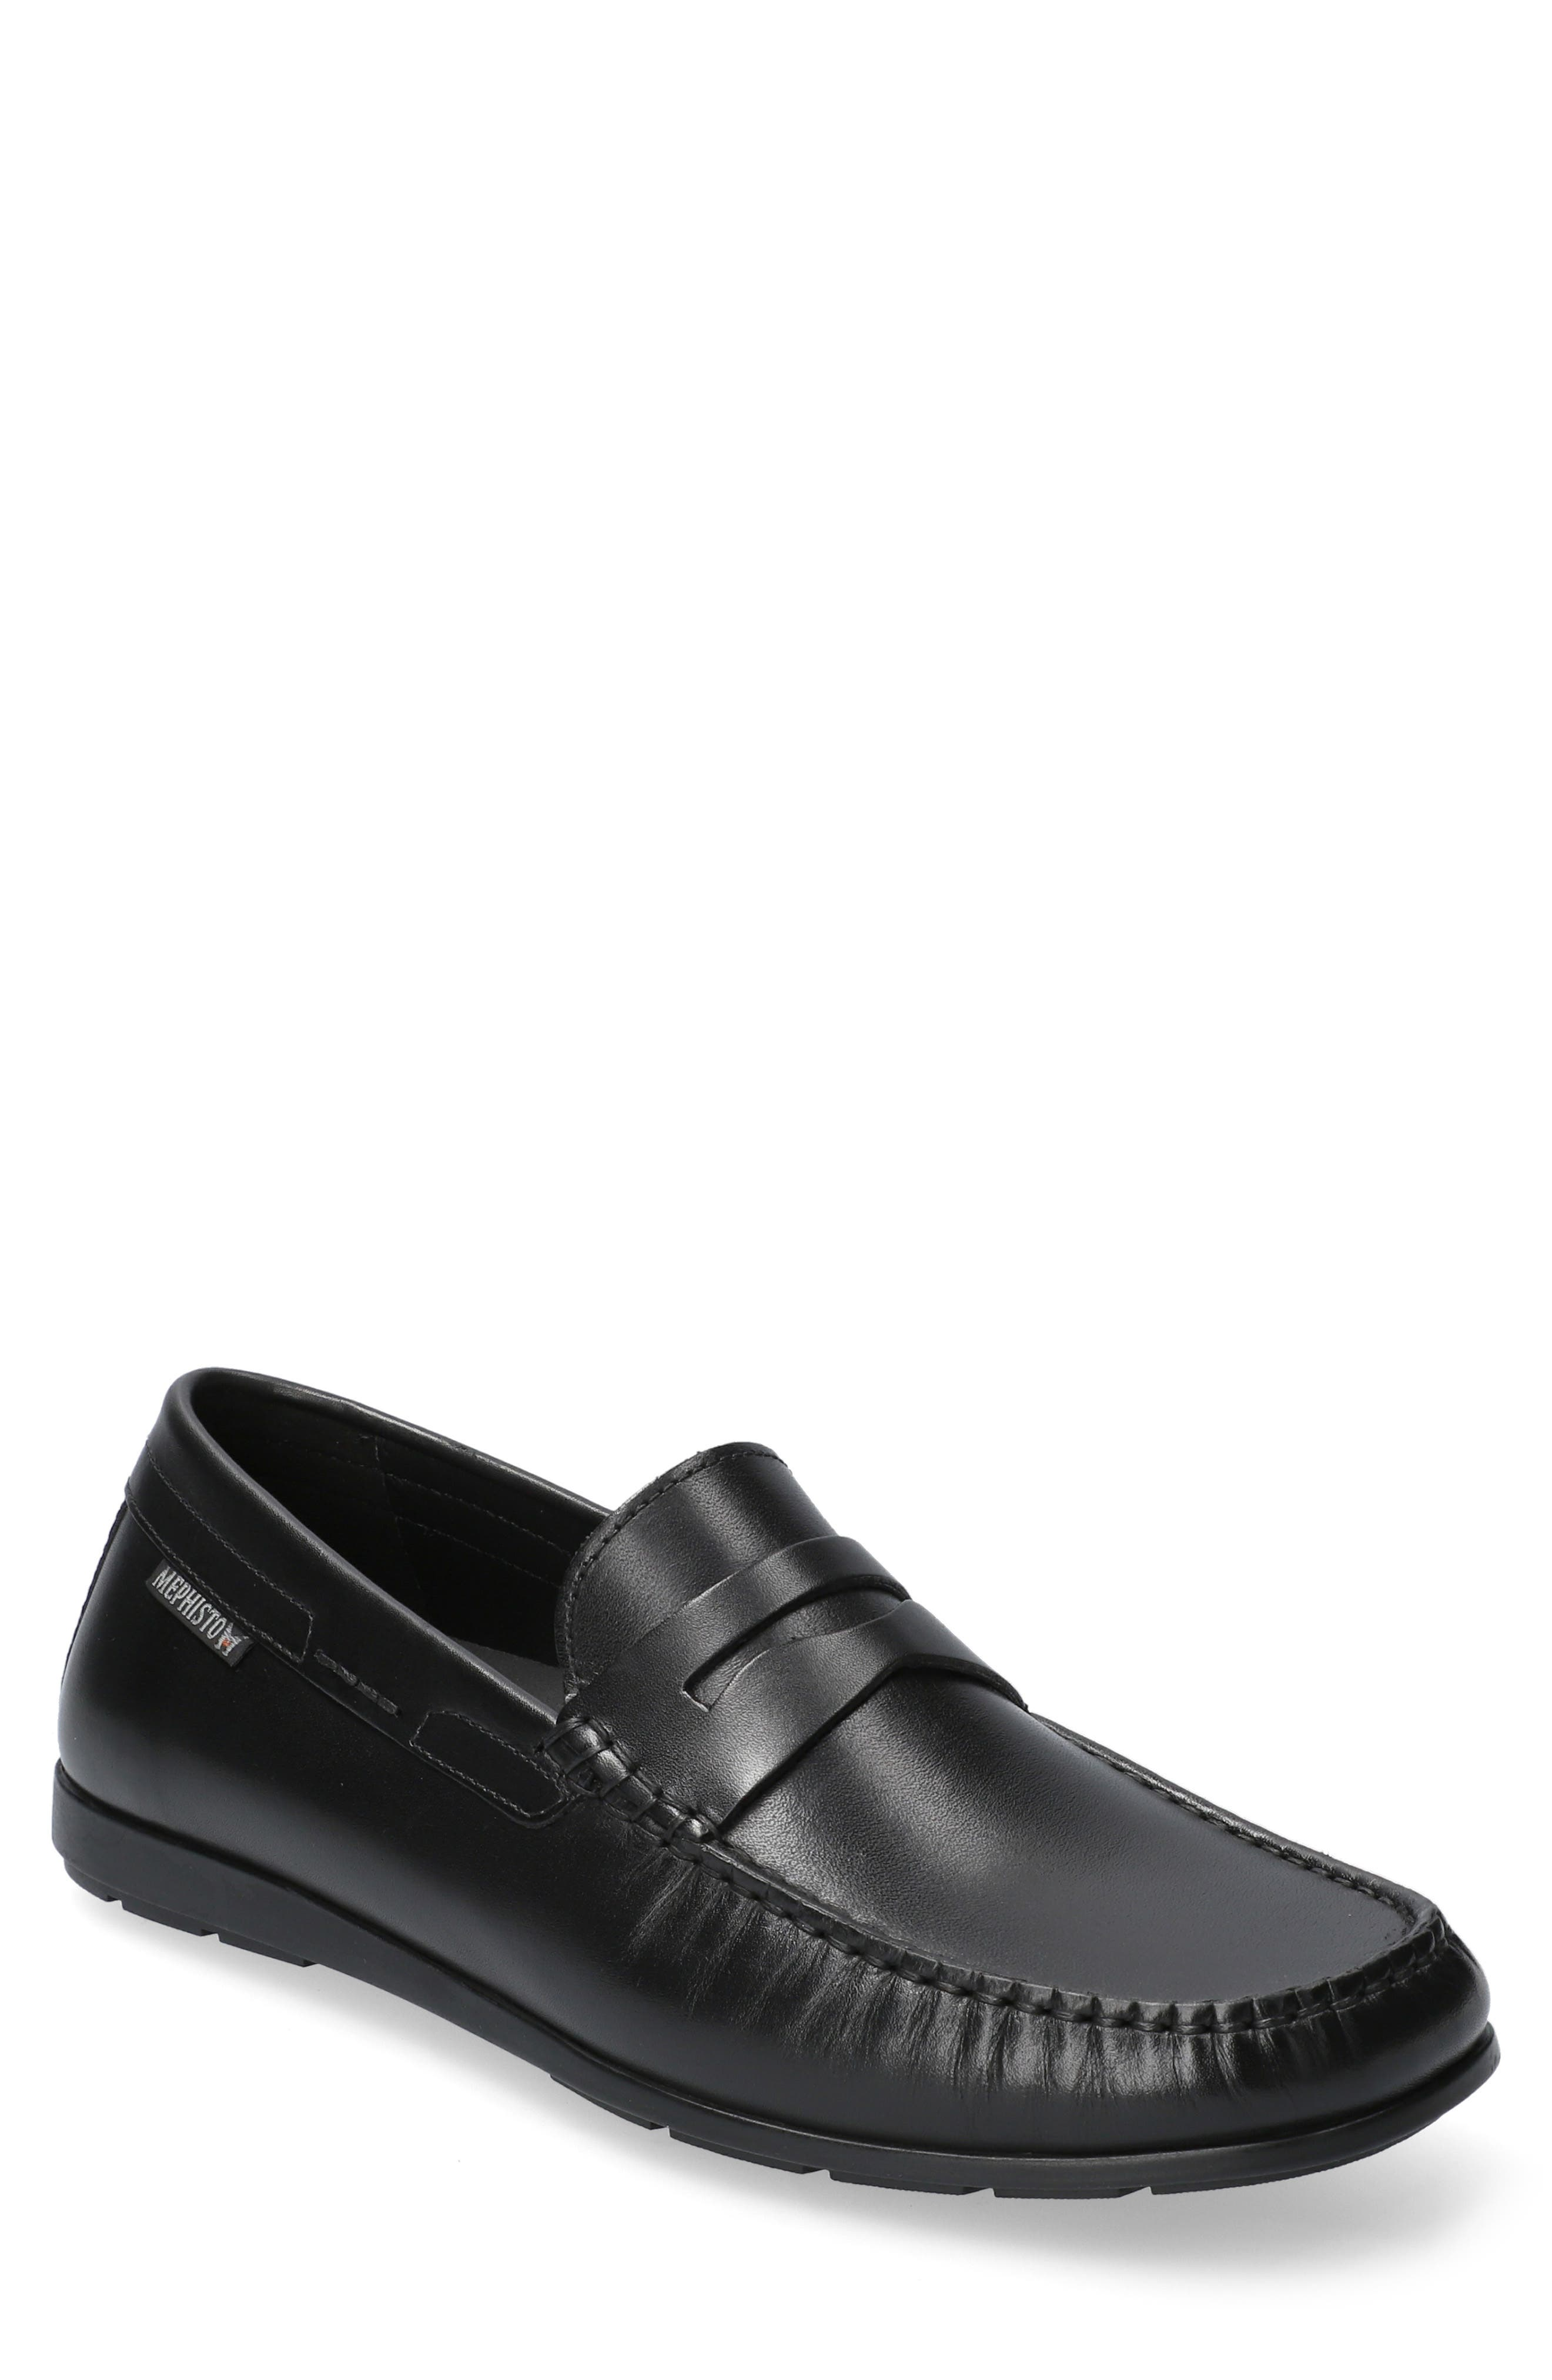 'Alyon' Penny Loafer